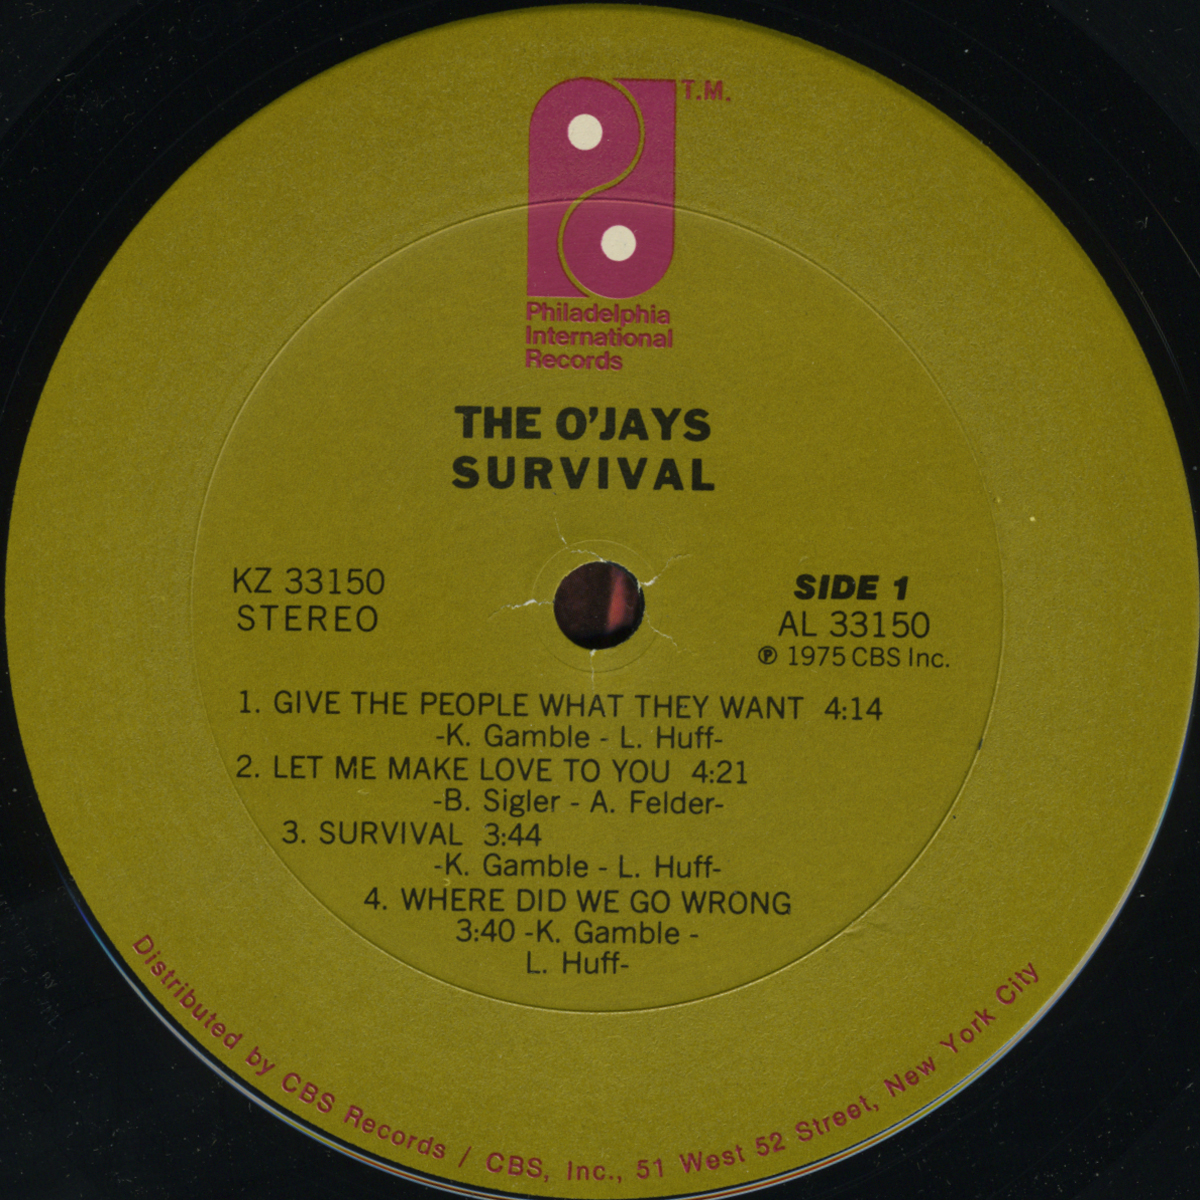 The OJays Survival